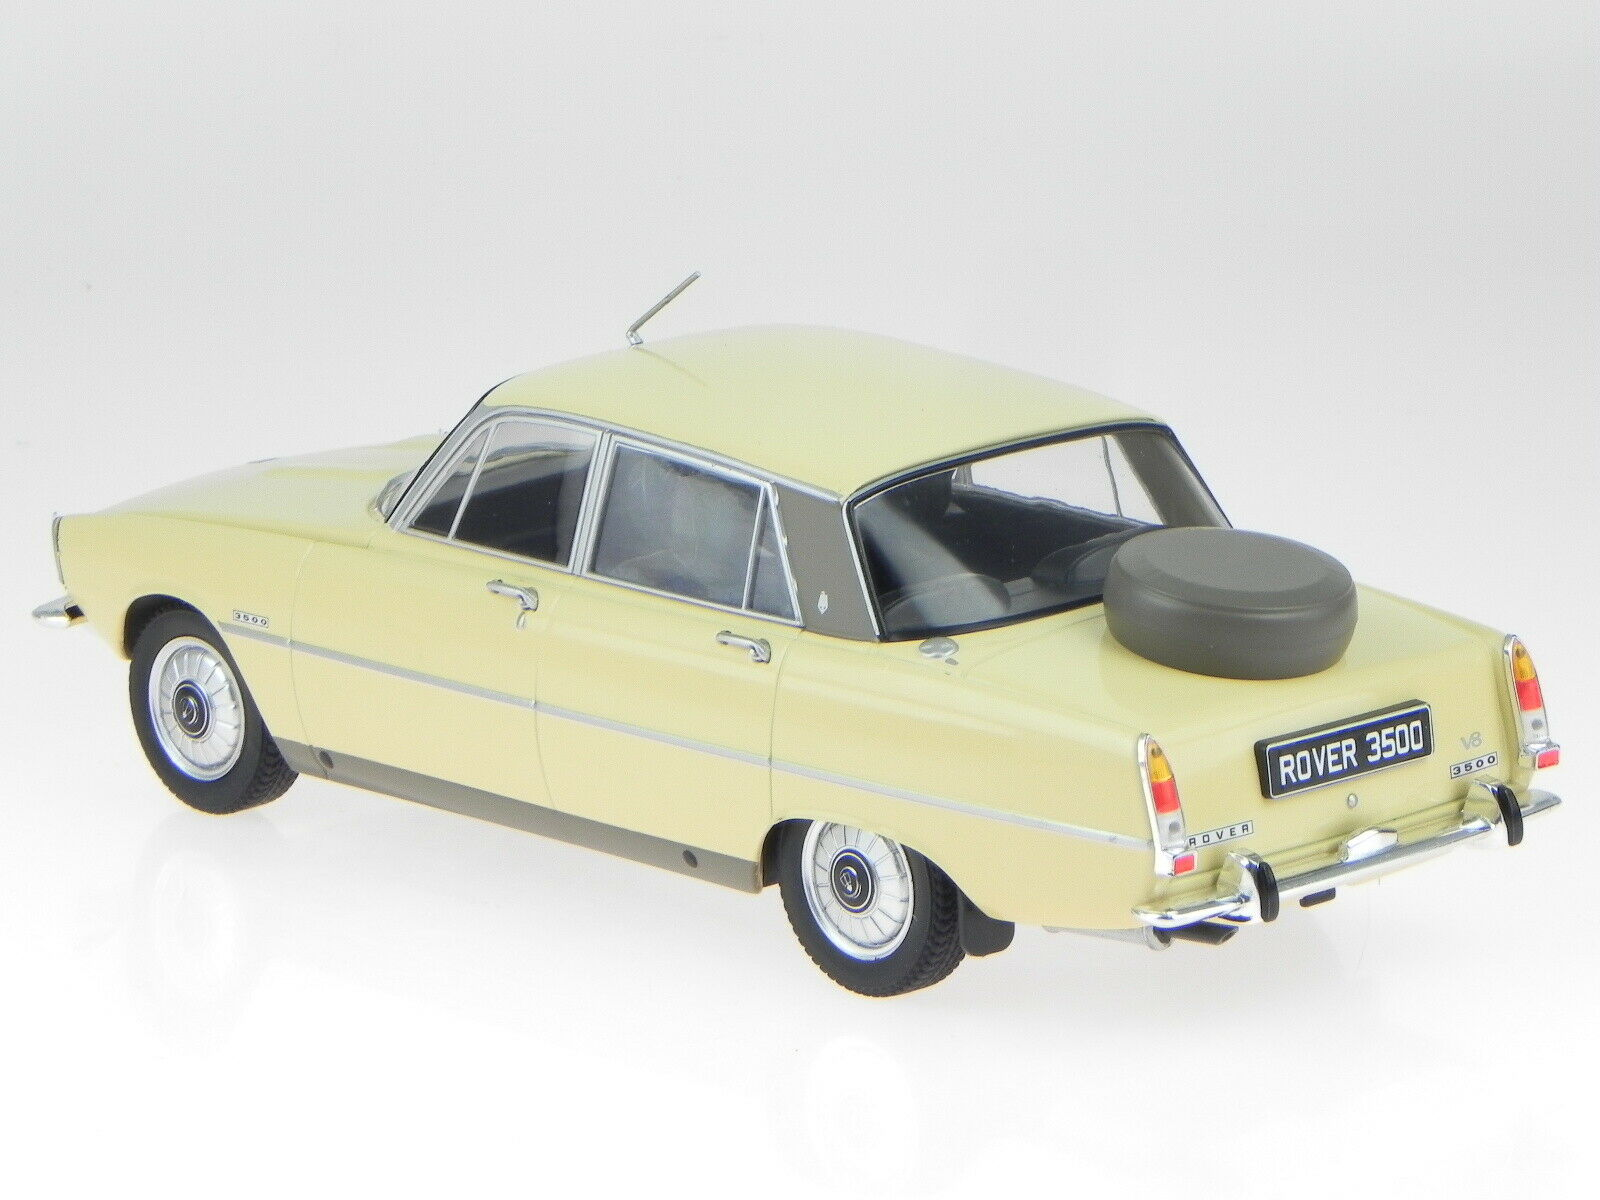 Rover P6 3500 1964 yellow yellow yellow diecast modelcar 18046 MCG 1 18 f58fed